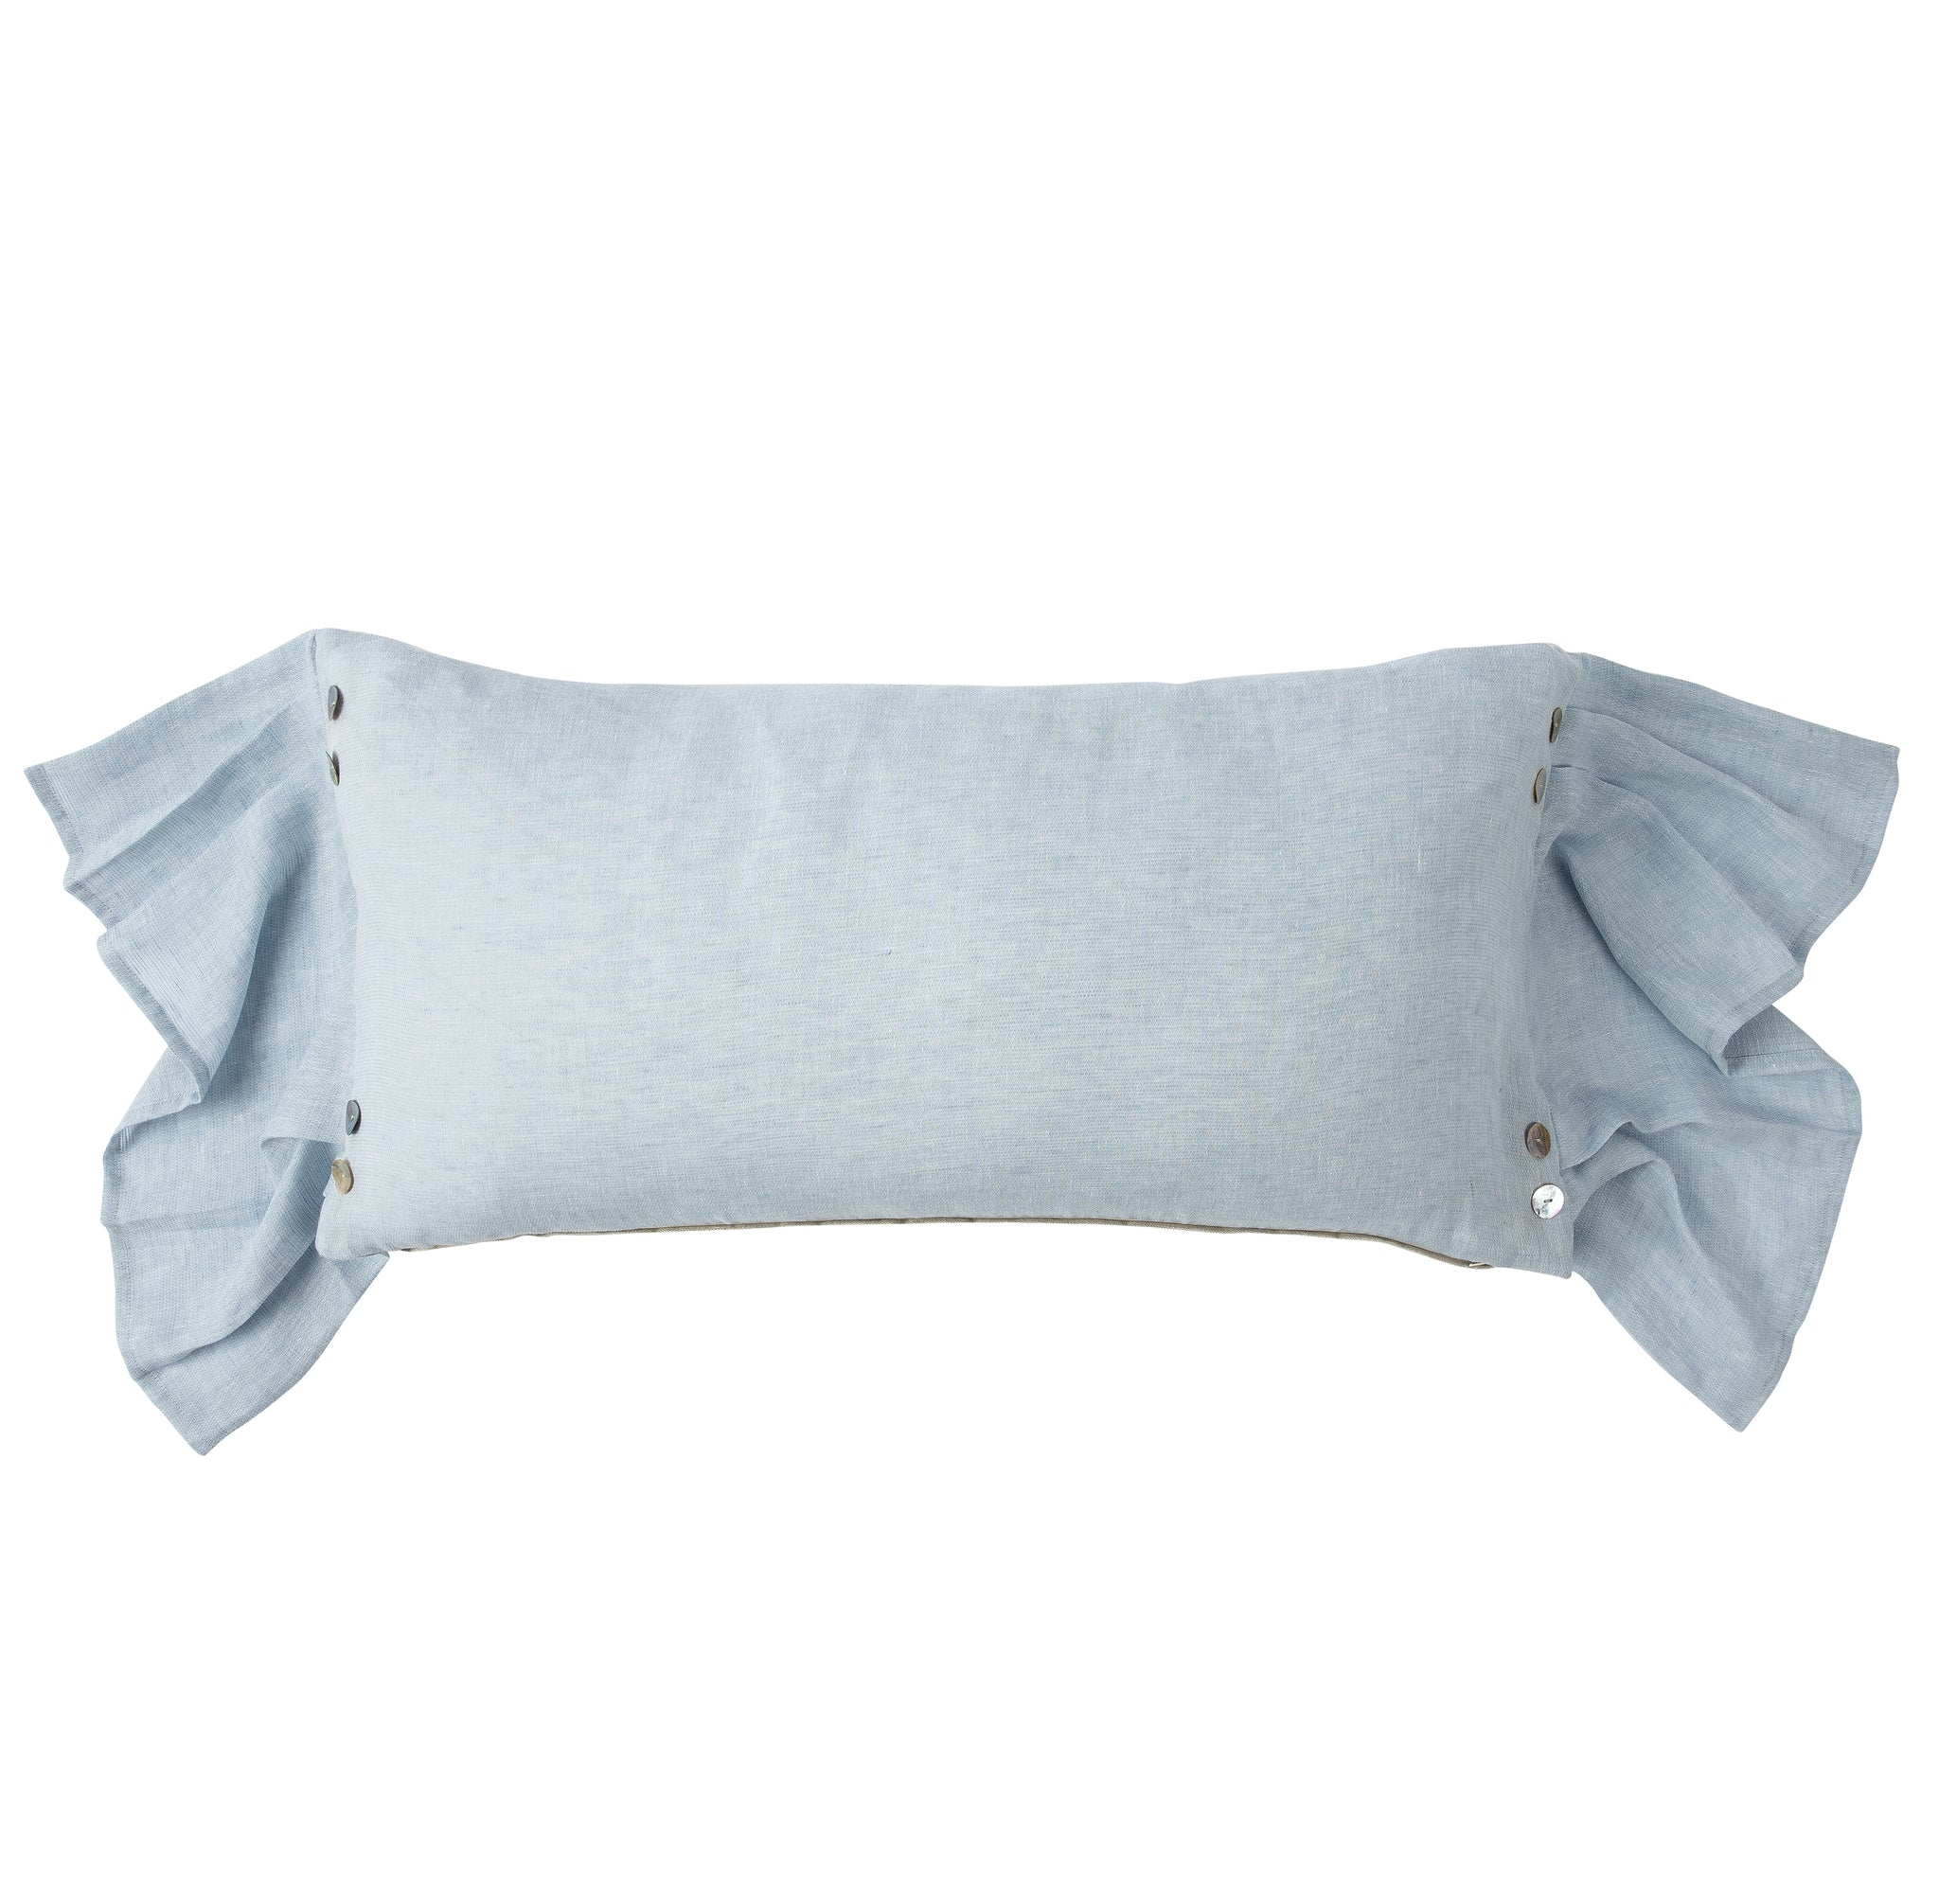 Sky Blue Lumbar Pillow with Sheer Draped Sides